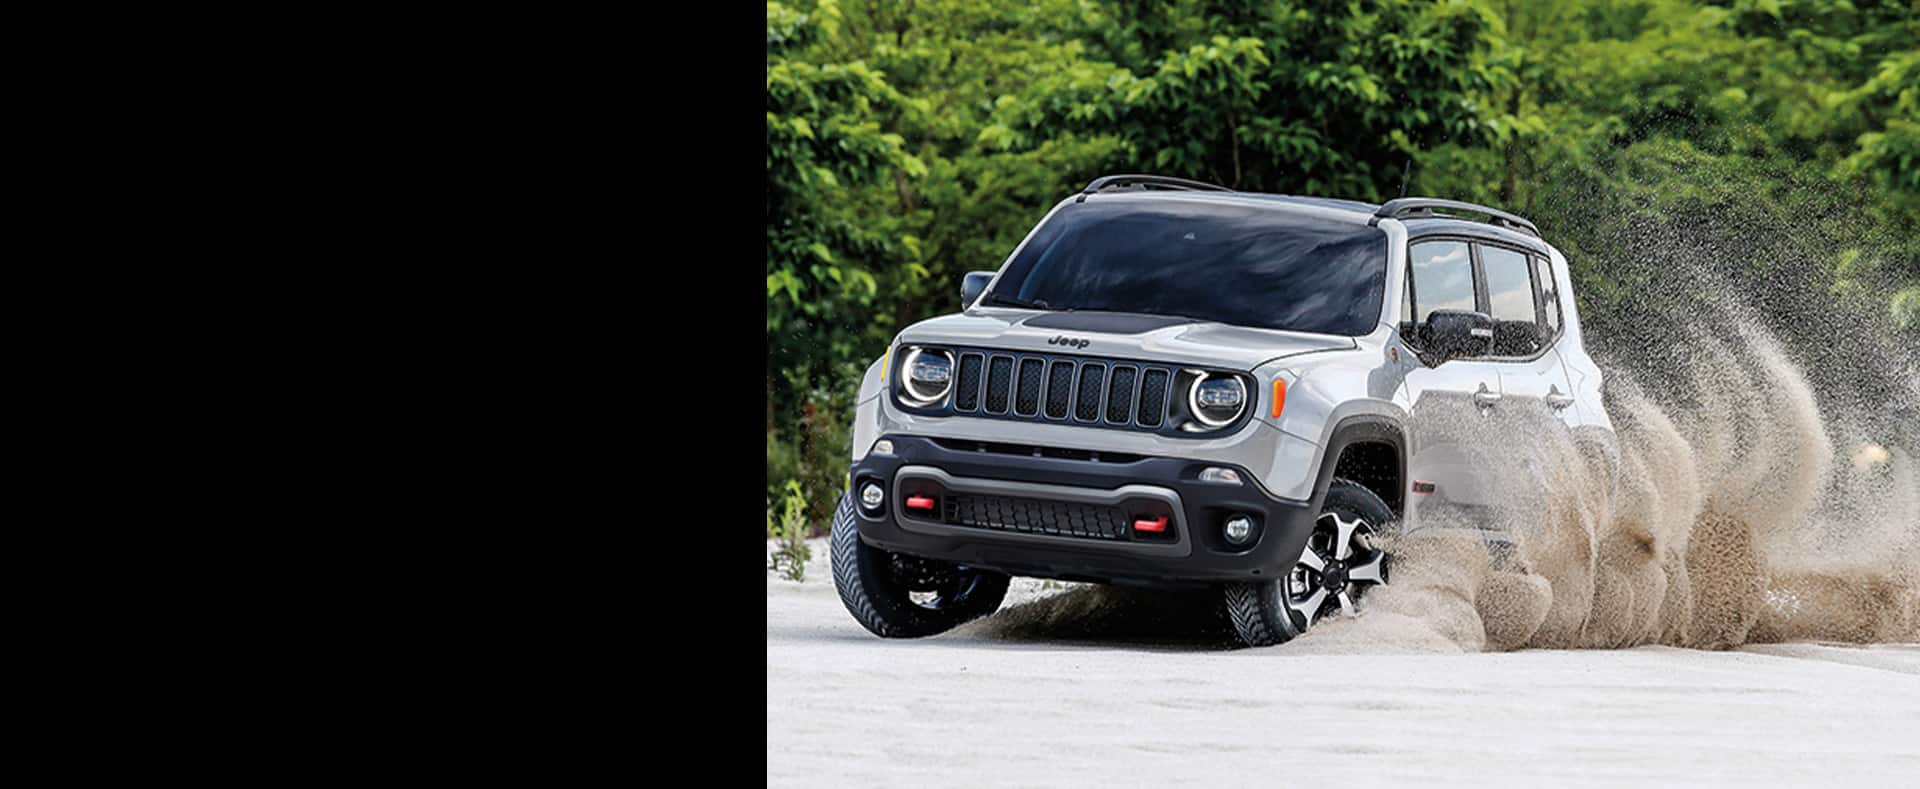 The wheels of 2020 Jeep Renegade throw up sand as it is driven on the beach.